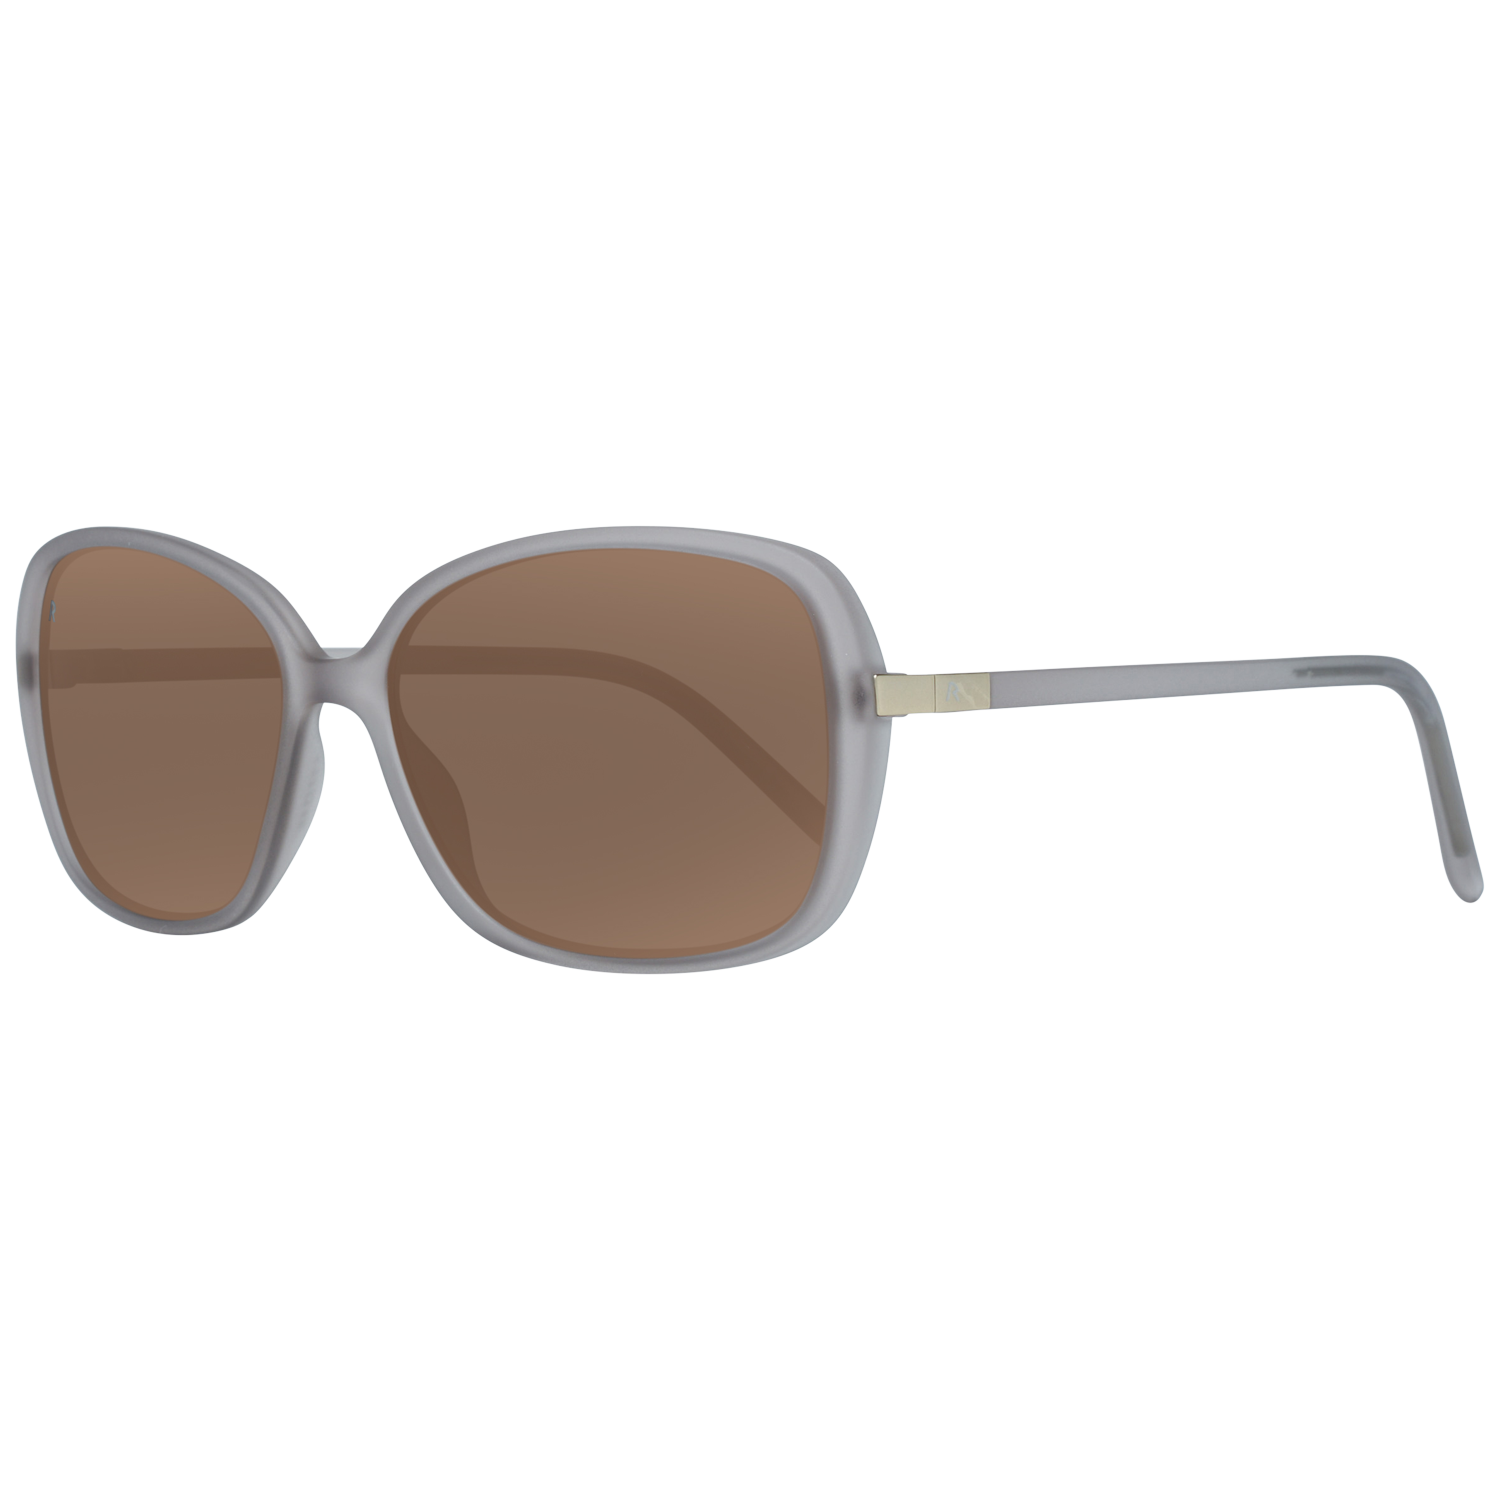 Rodenstock Sunglasses R3292 B 57 Brown